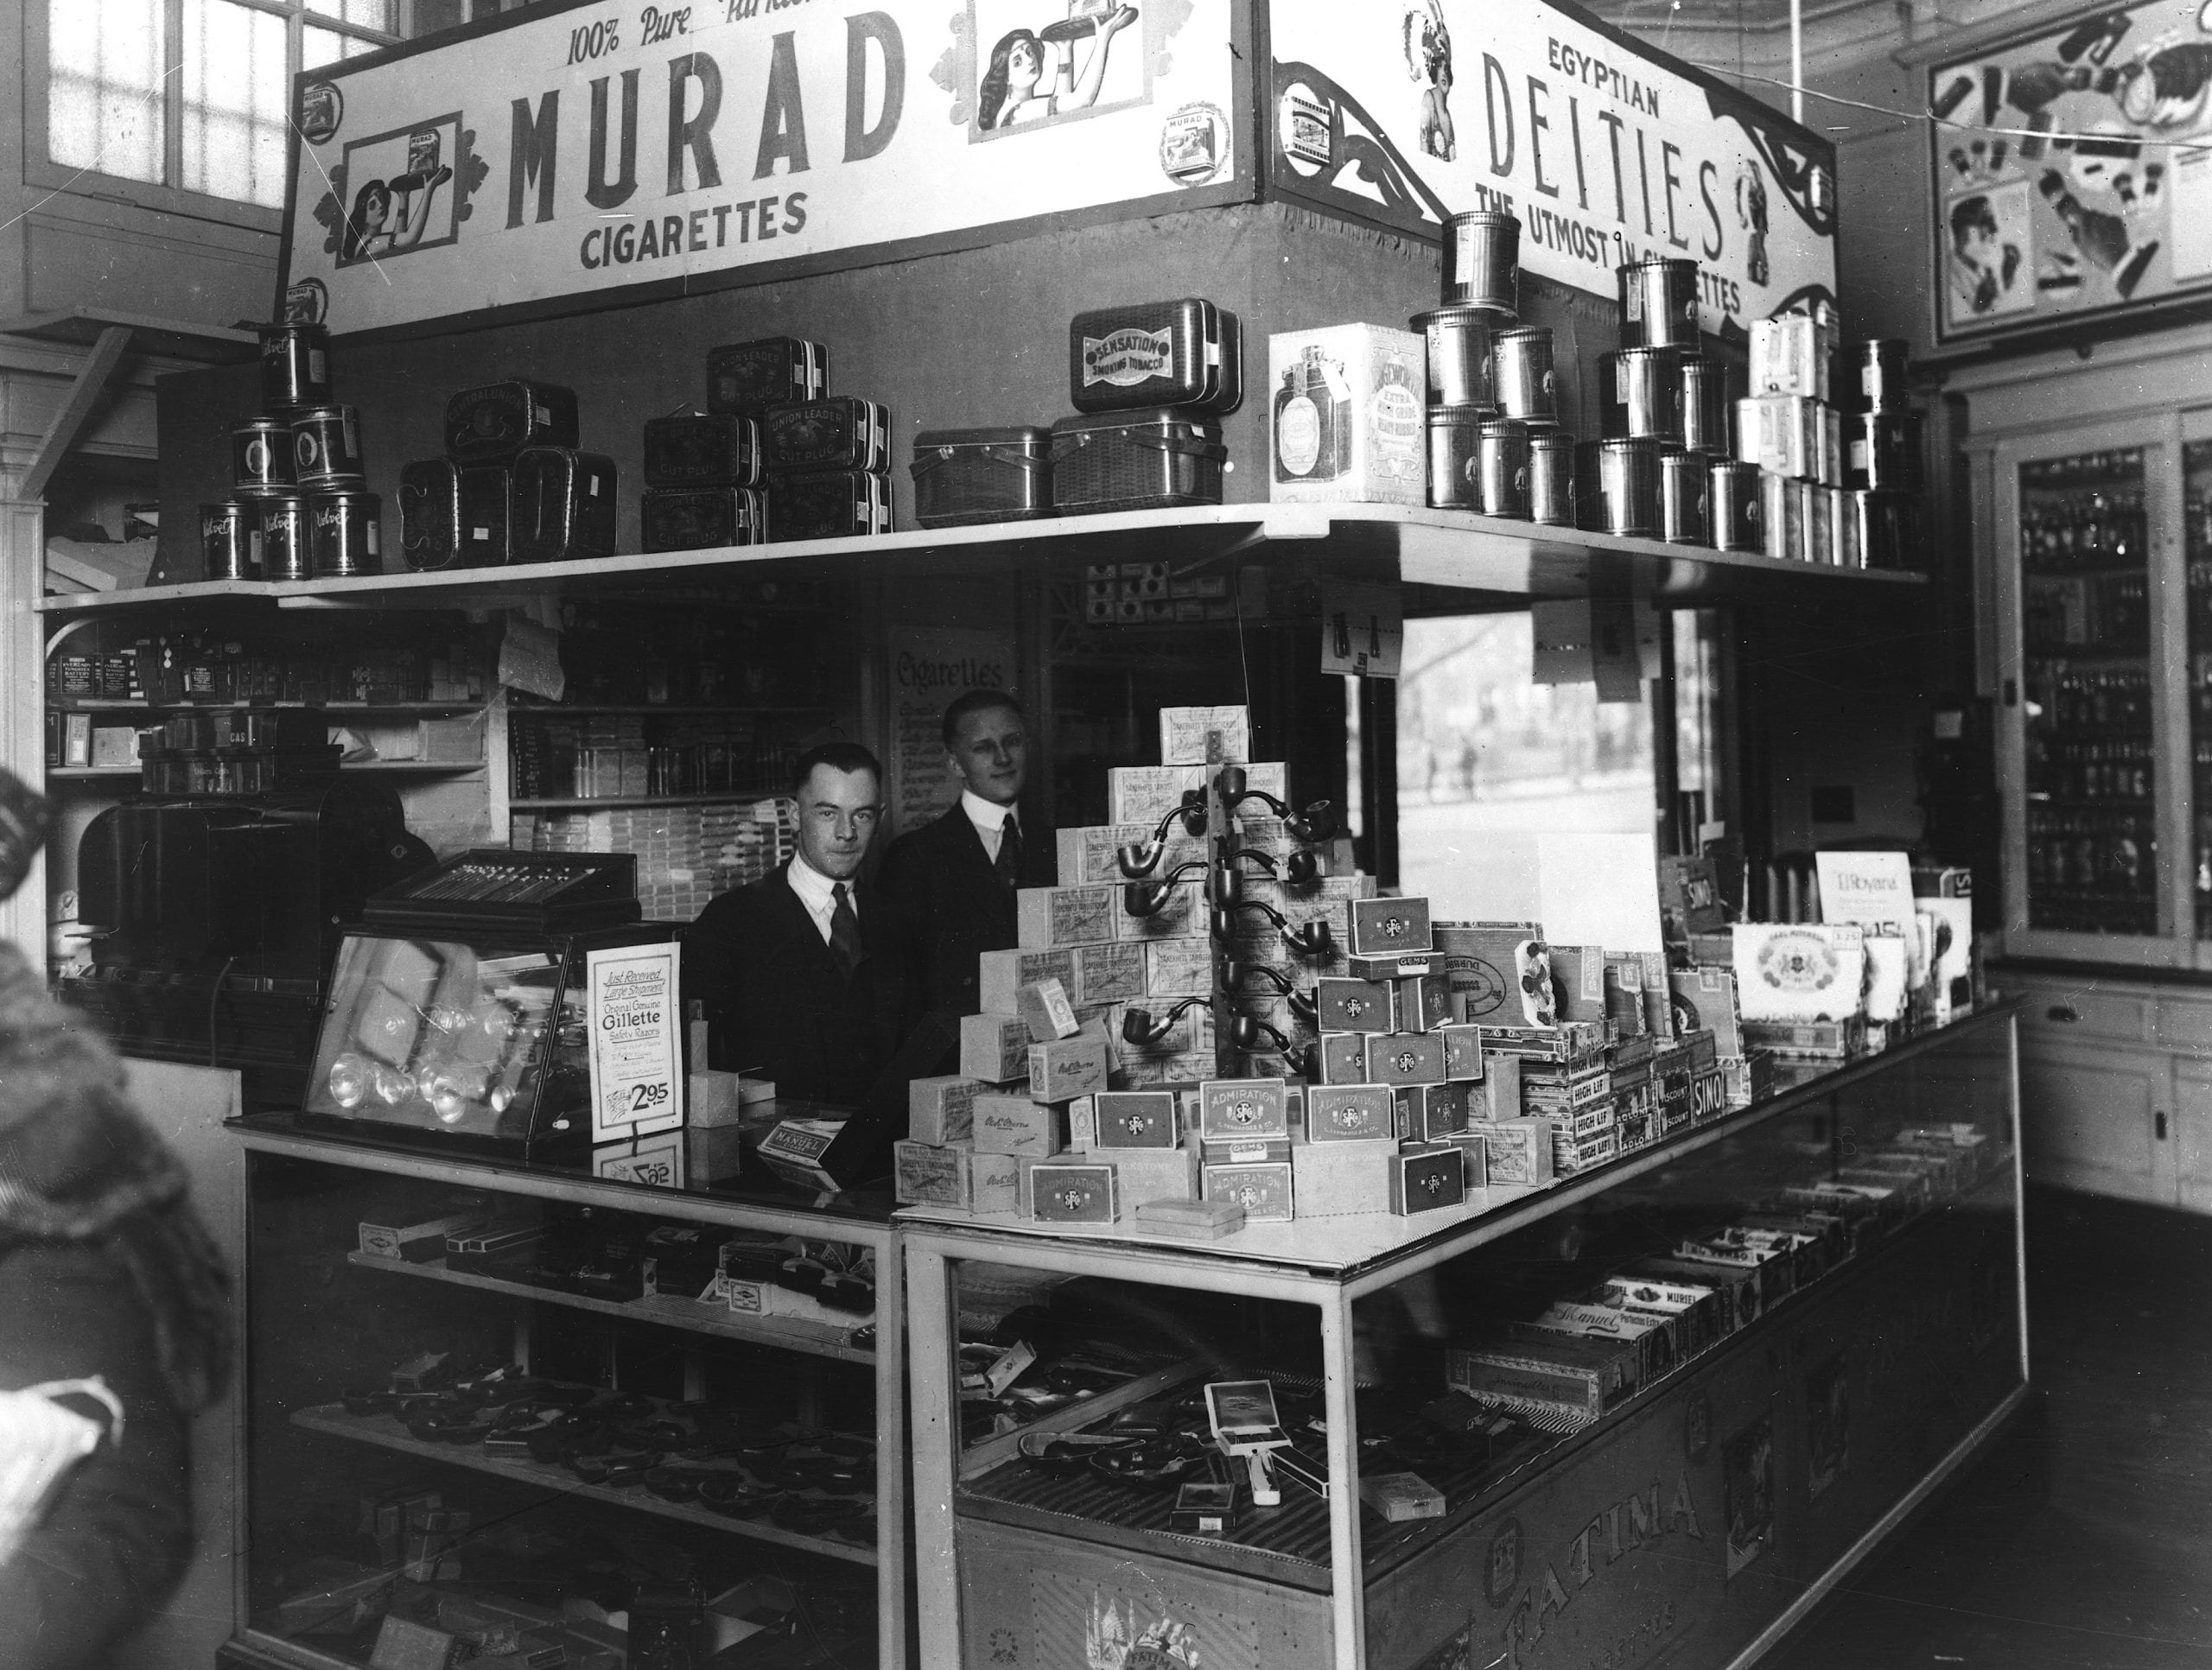 Interior of People's Drug Store, 7th and K Streets, Washington, D.C., with employees behind counter with display of smoking products including pipes, cigars, tobacco, and cigarettes (1920s)